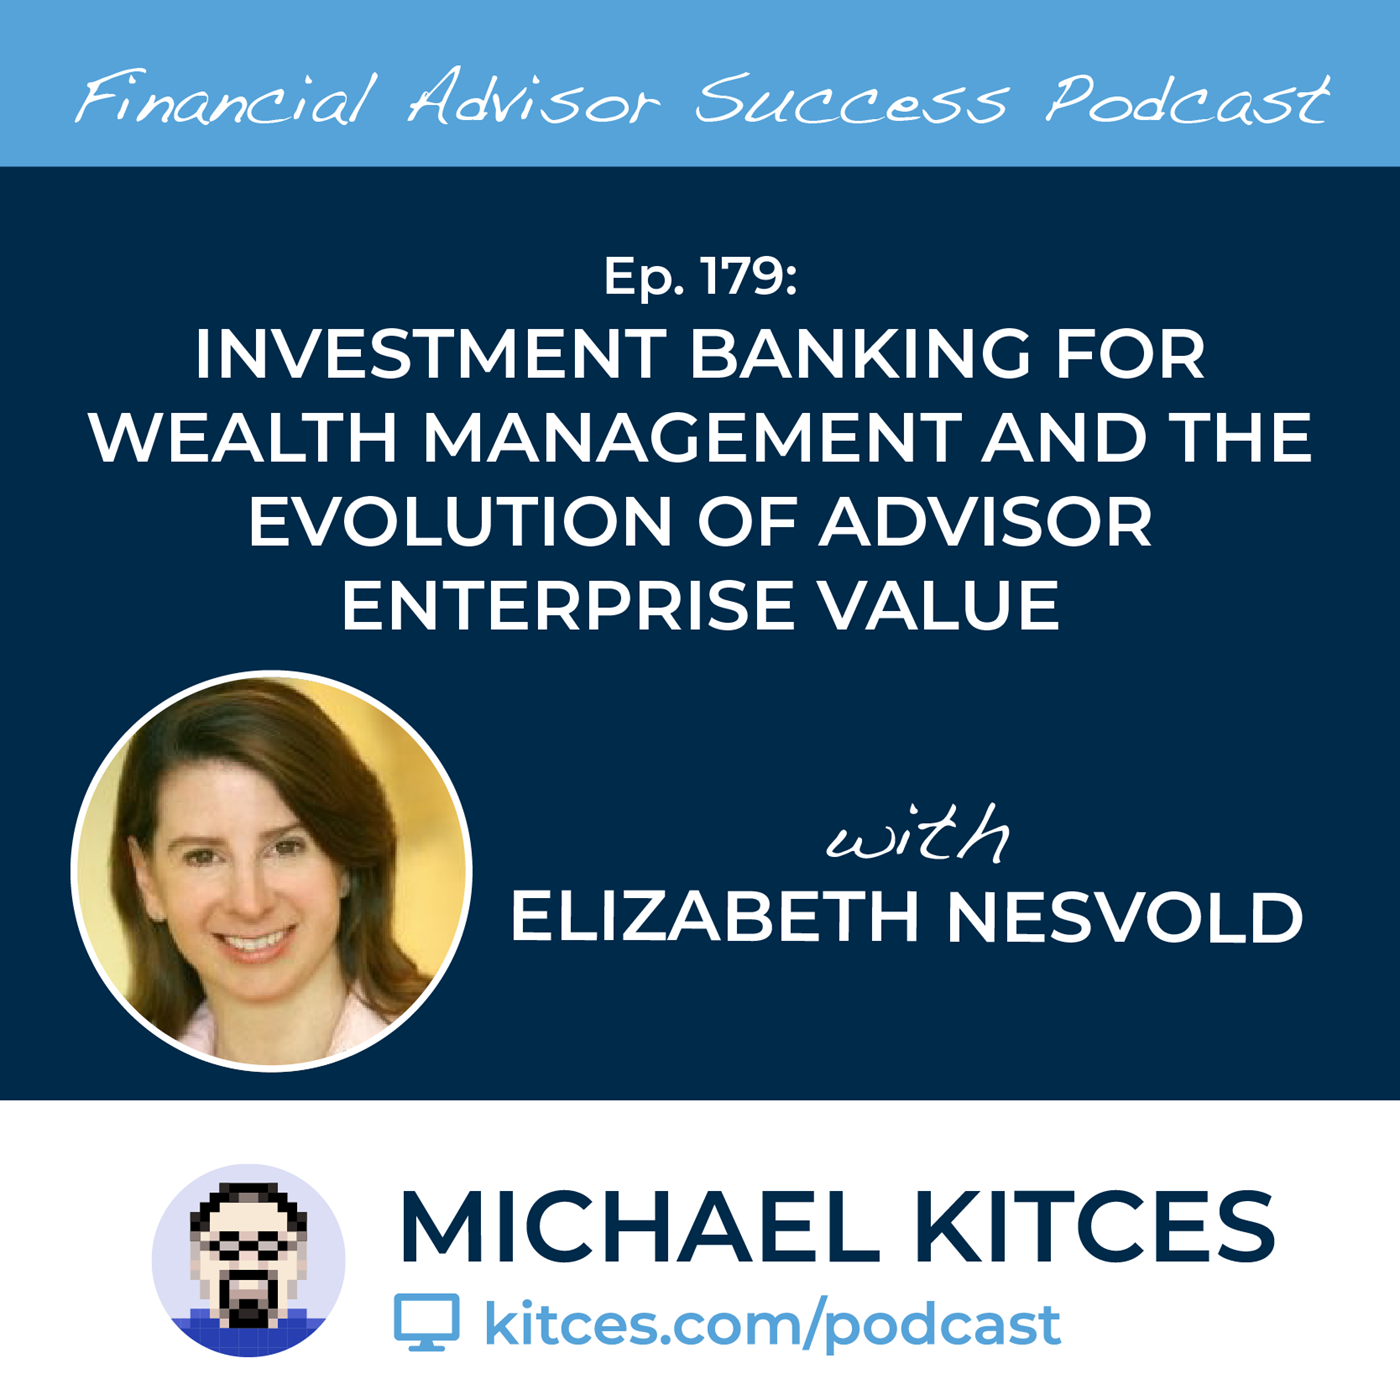 Ep 179: Investment Banking For Wealth Management And The Evolution Of Advisor Enterprise Value with Elizabeth Nesvold